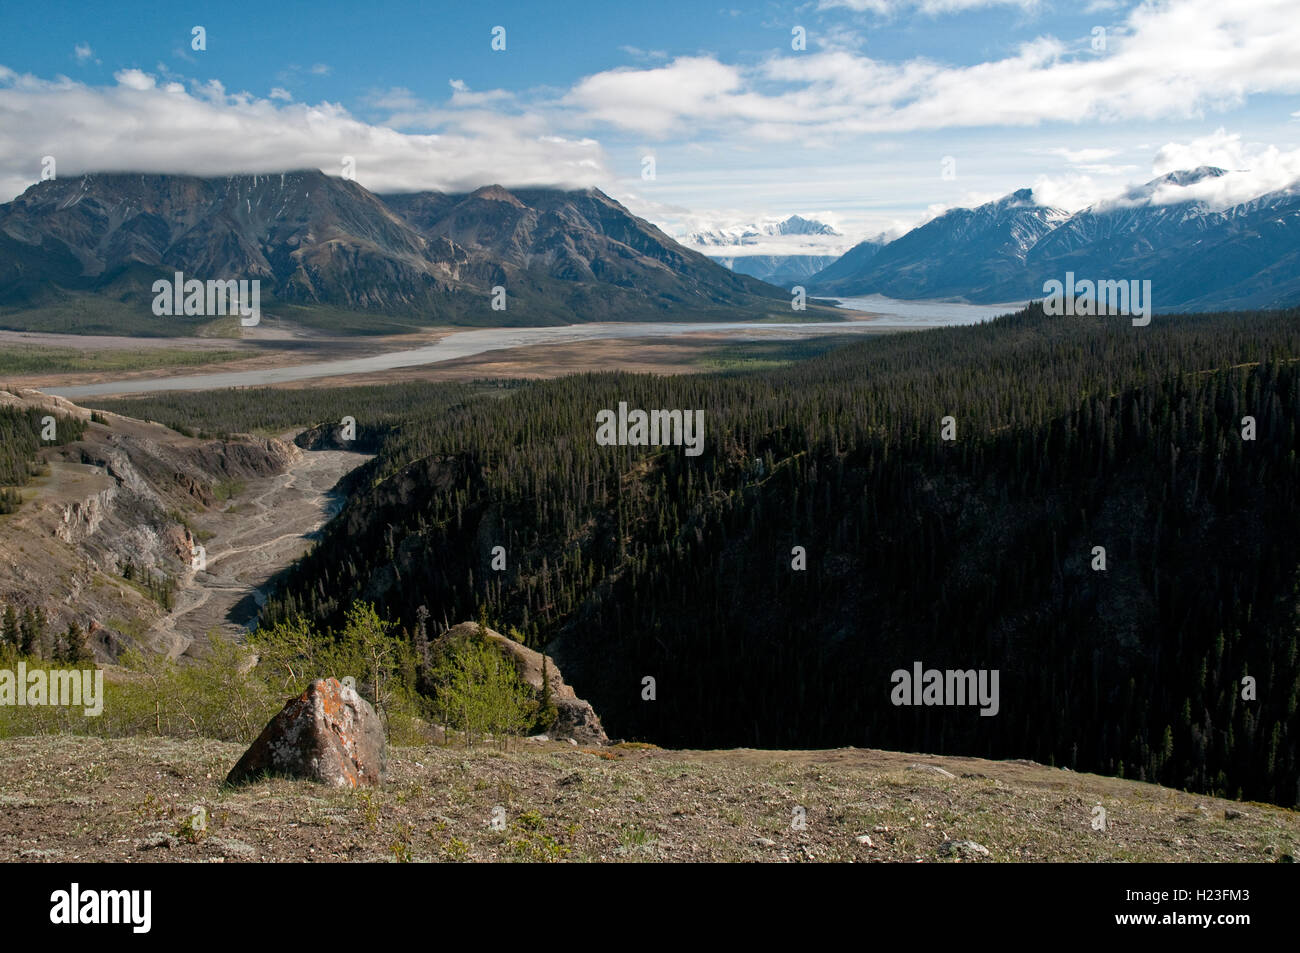 A view of the misty St. Elias Mountains and the Slims River Valley in Kluane National Park, Yukon Territory, Canada. - Stock Image